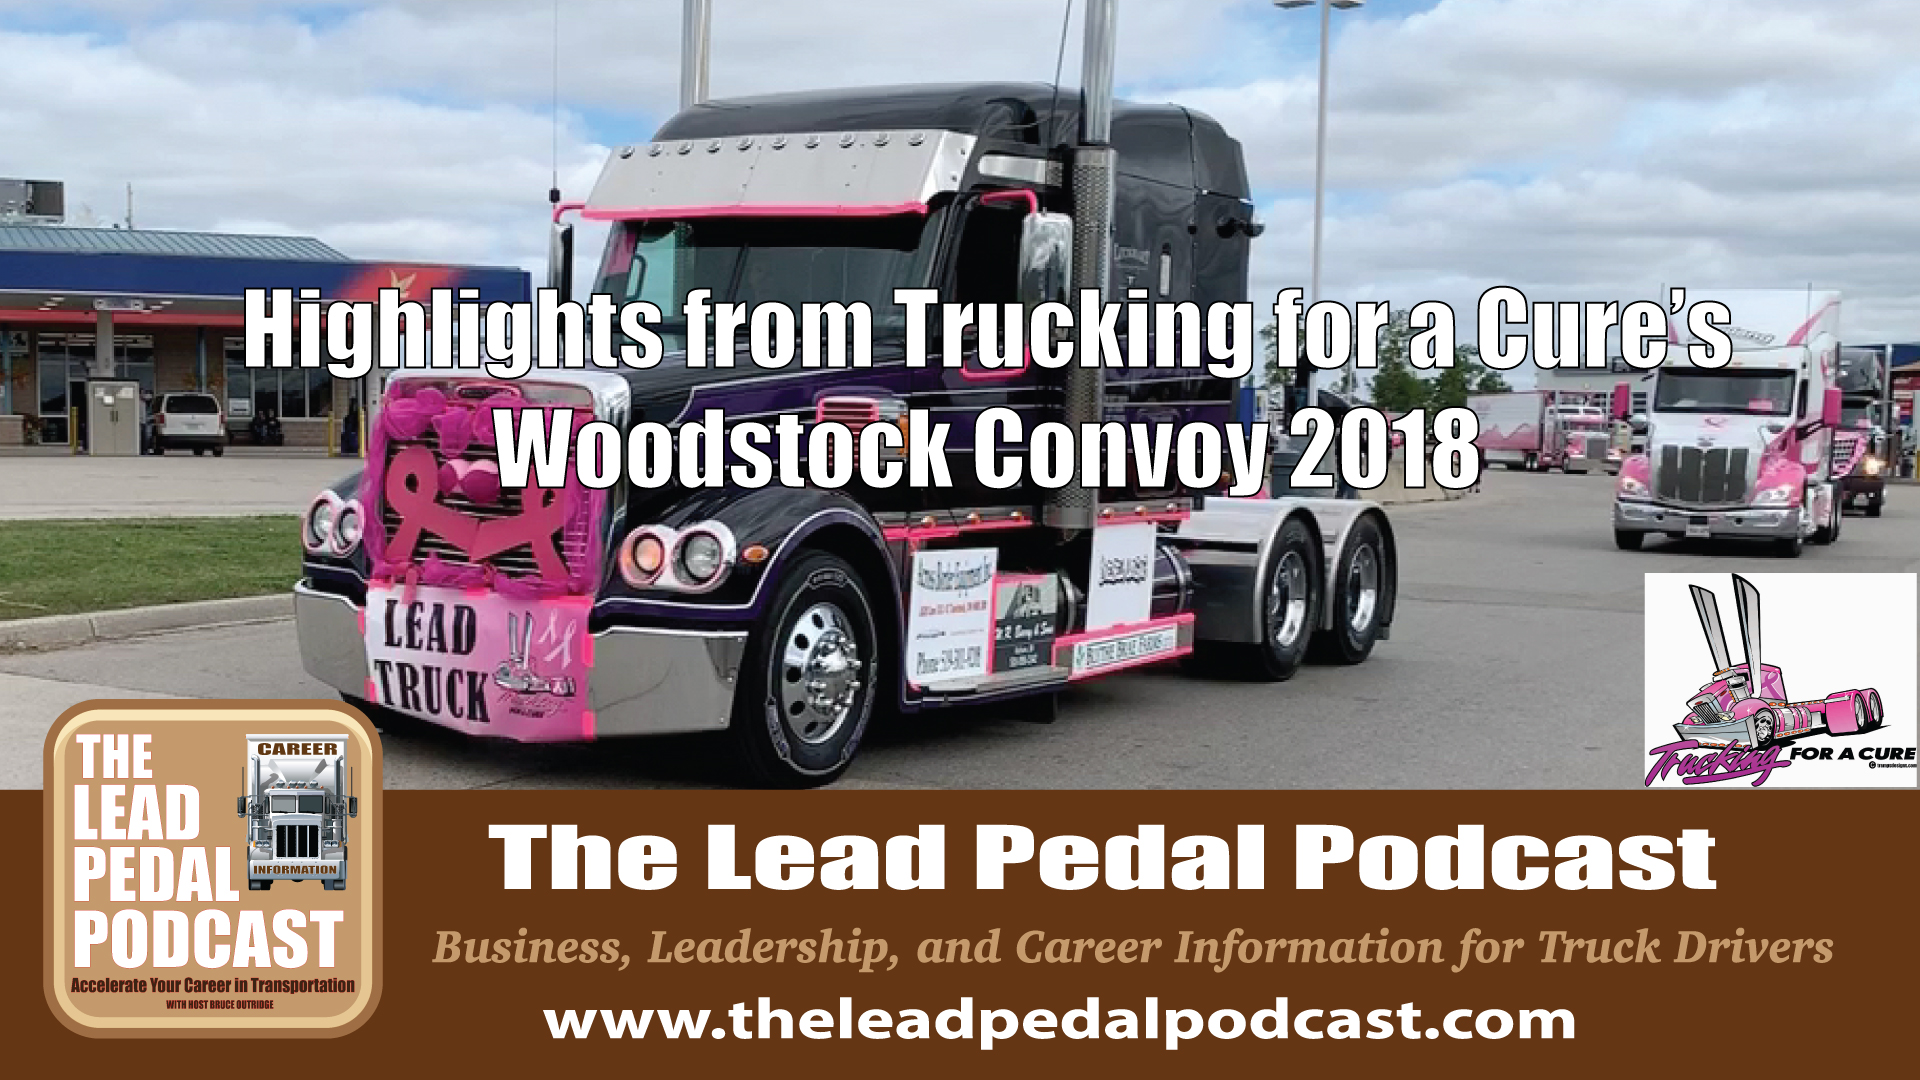 Career Trucking The Lead Pedal Podcast For Truck Drivers Lp259 Trucking For A